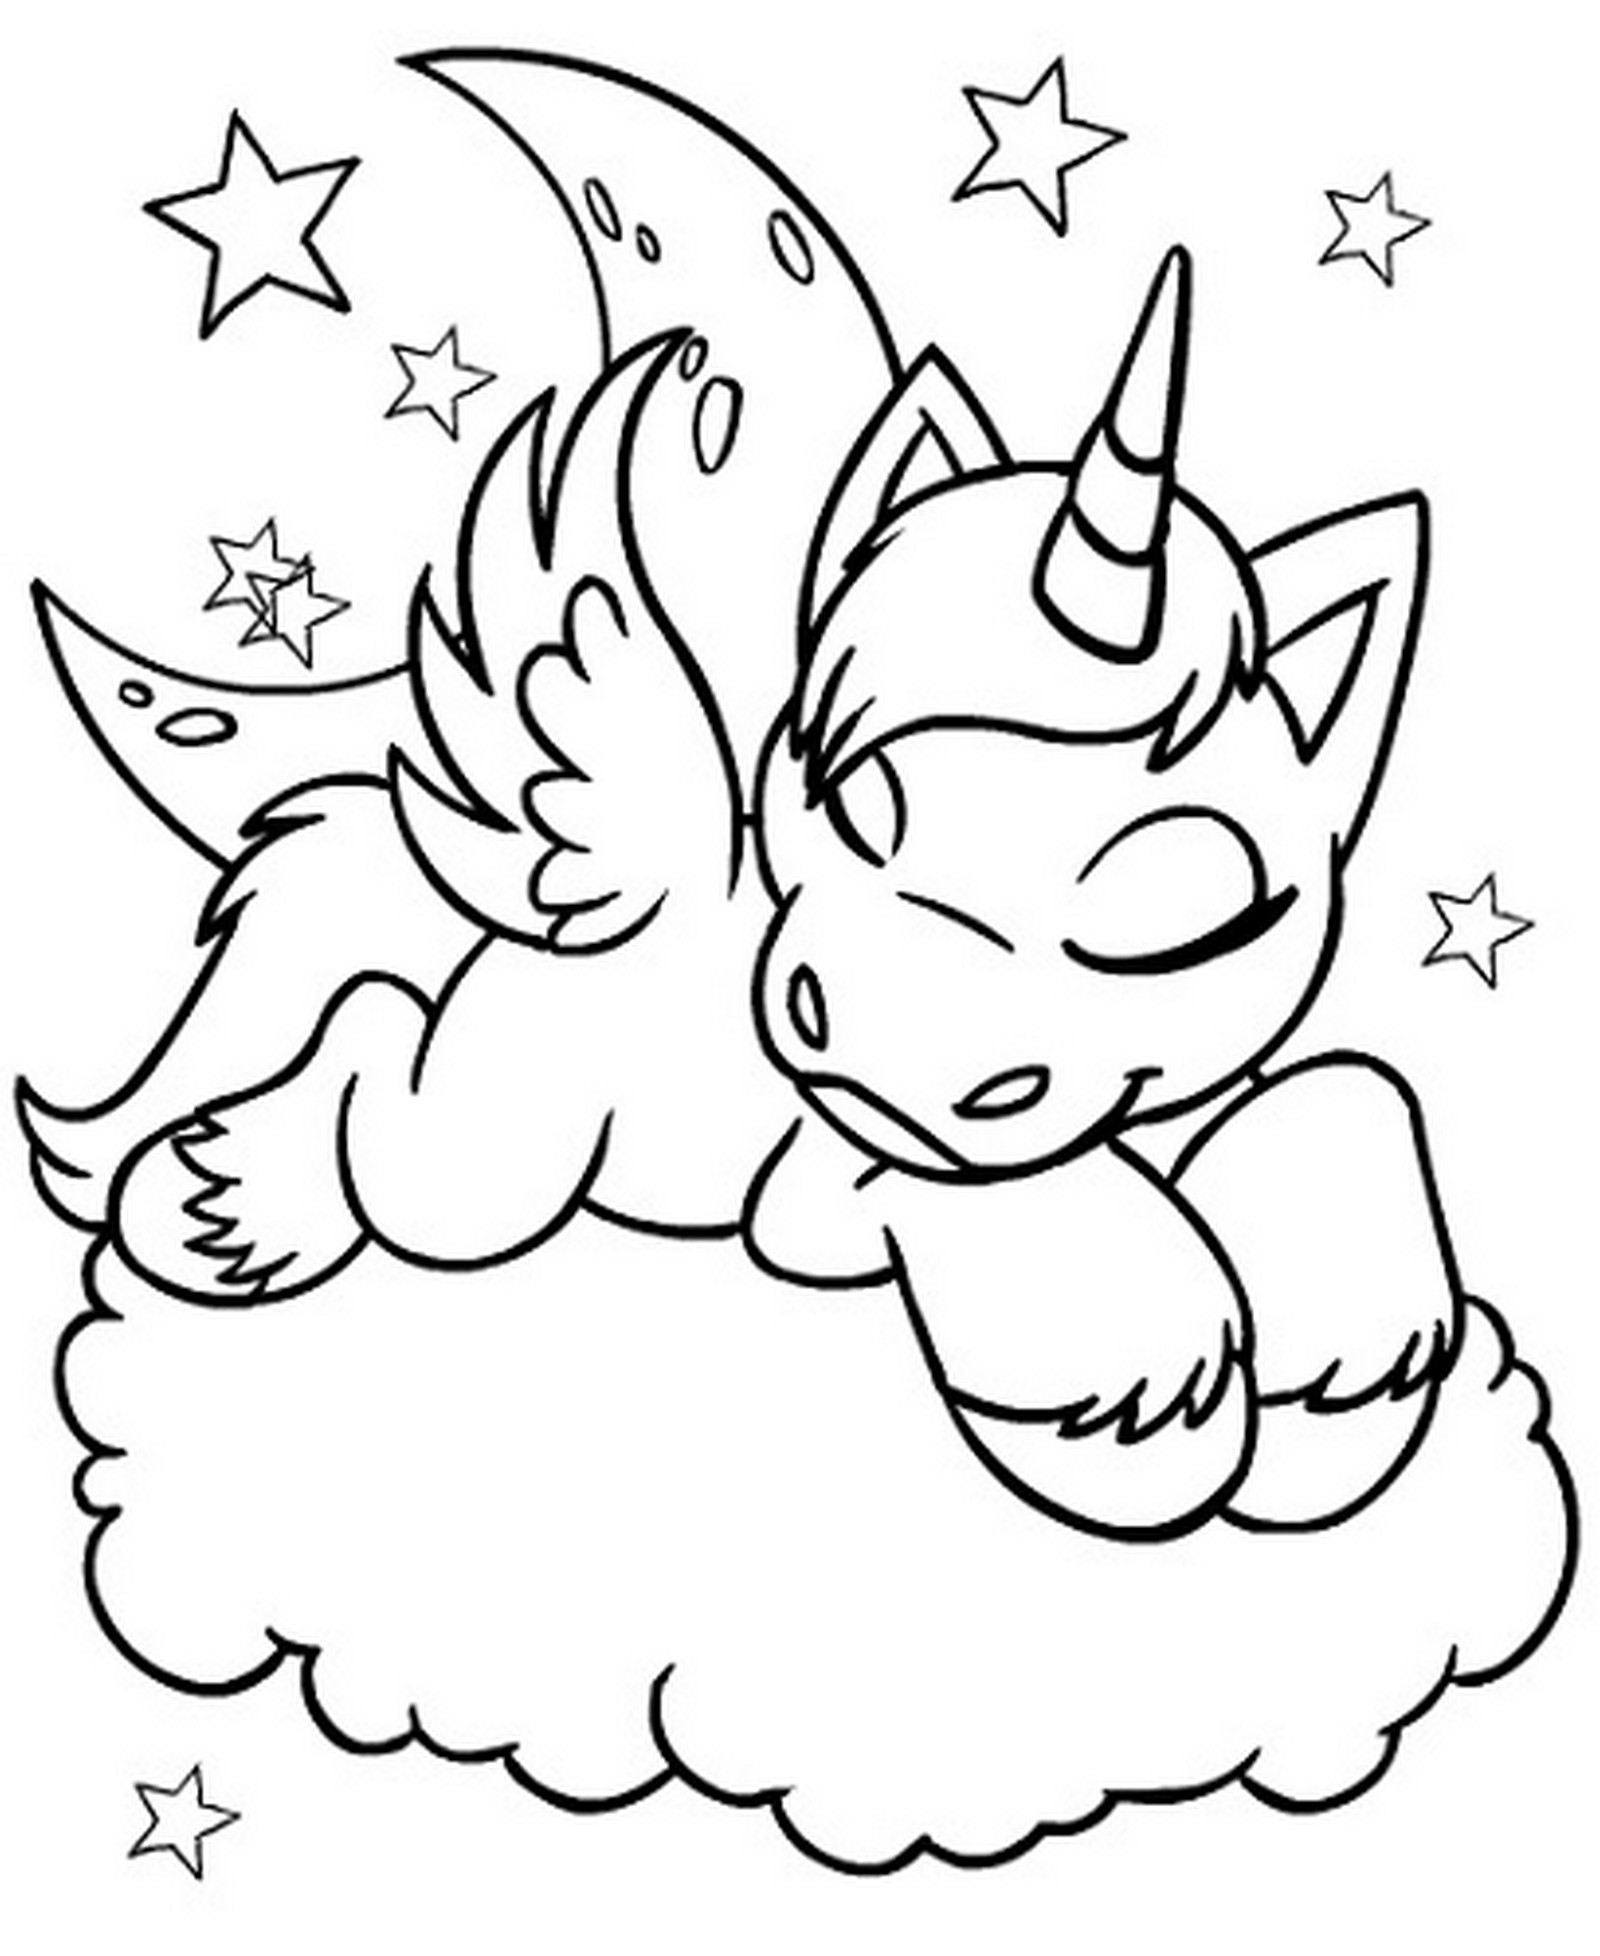 unicorn coloring book pages unicorn coloring pages to download and print for free book unicorn coloring pages